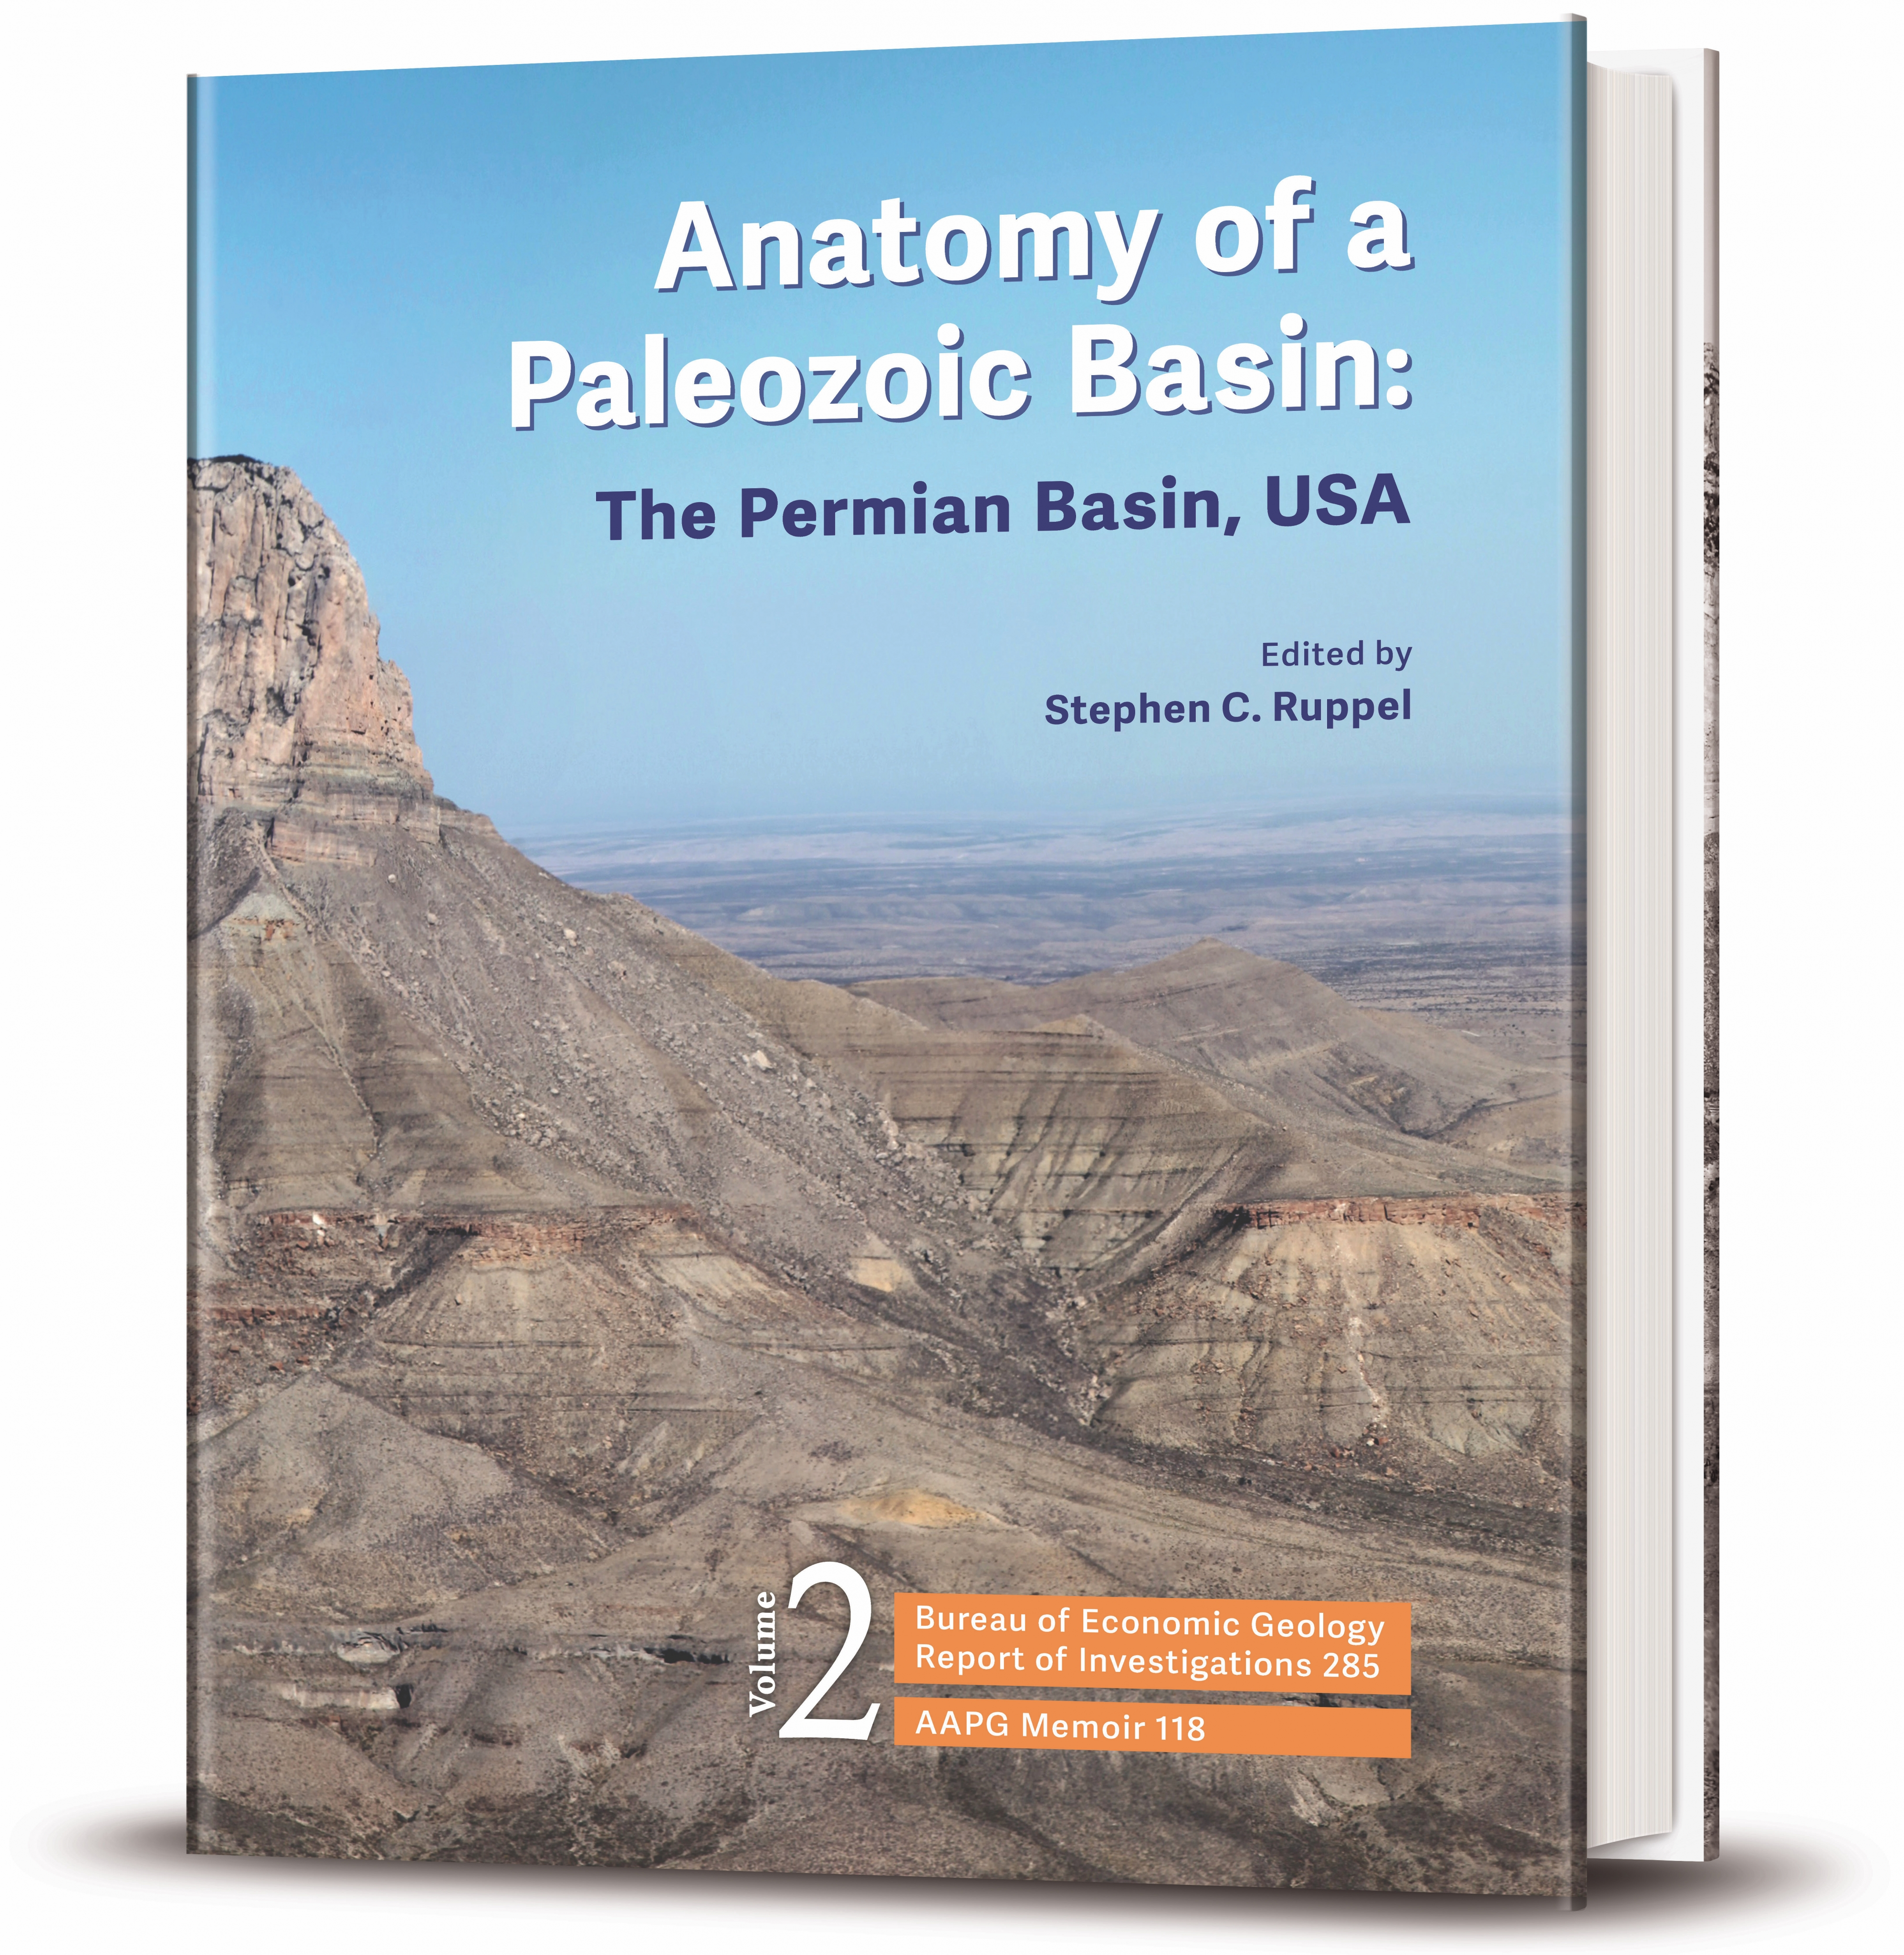 Anatomy of a Paleozoic Basin: The Permian Basin, USA, Volume 2